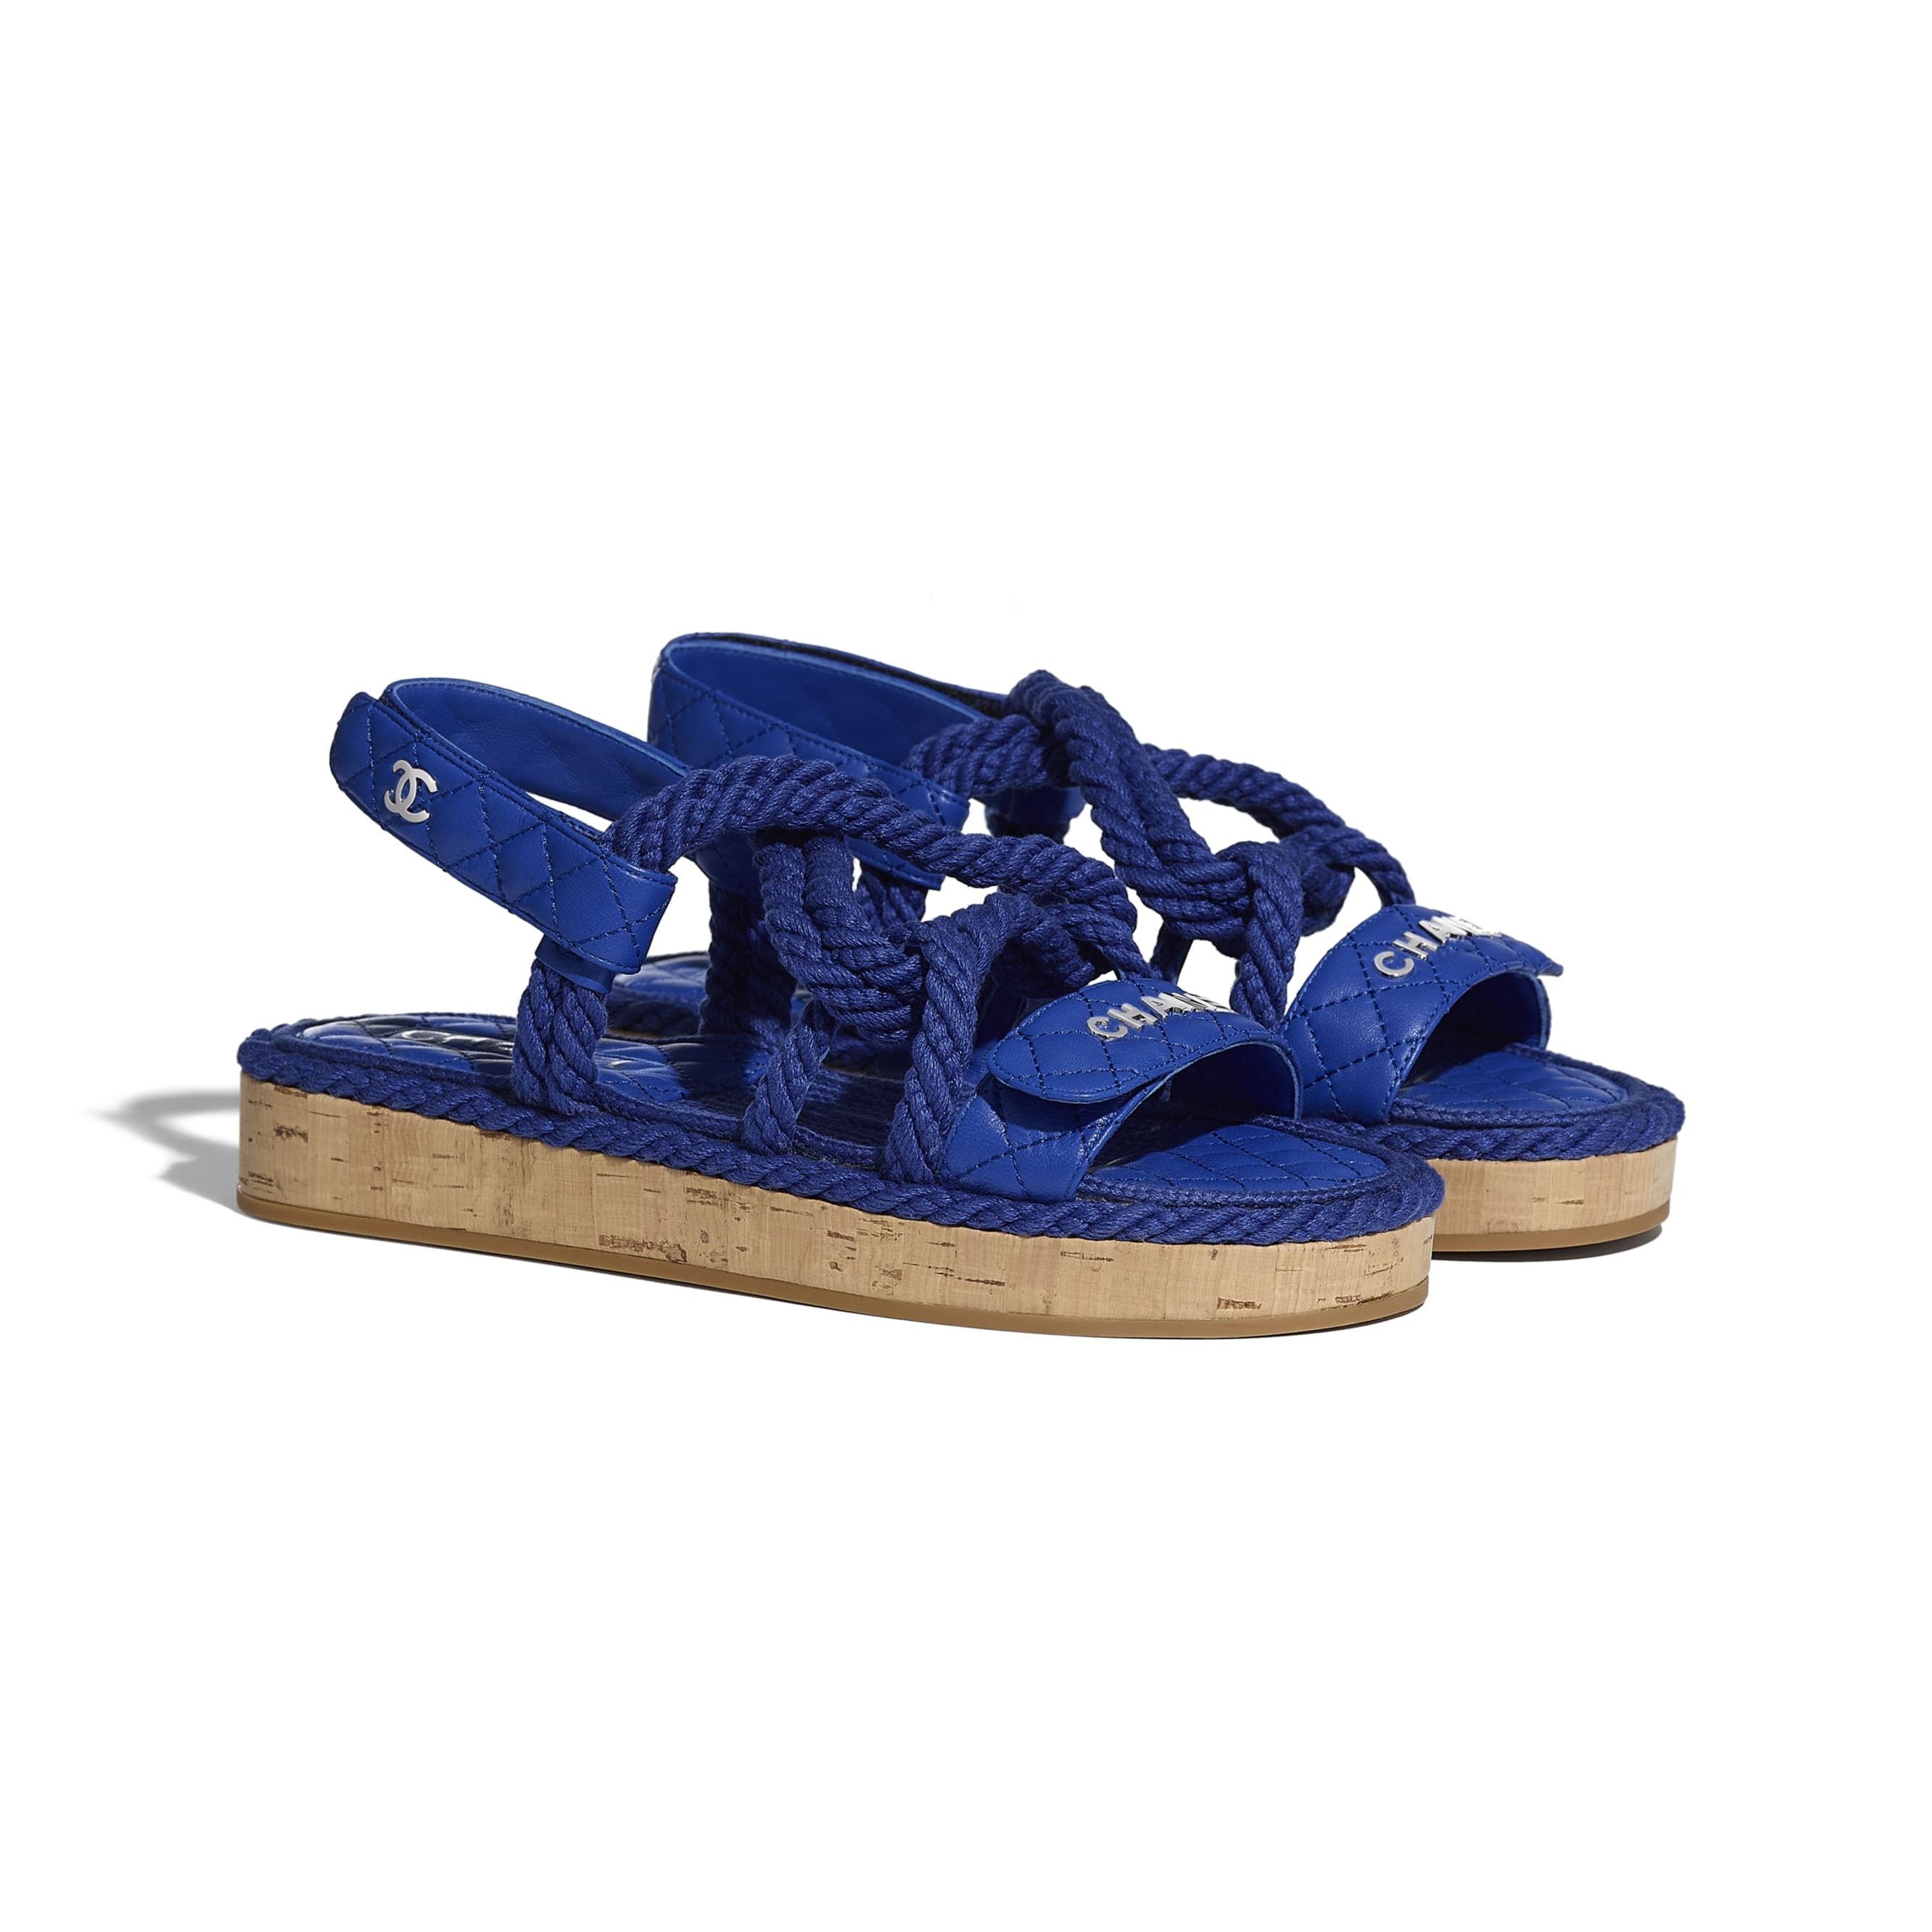 Sandals - Blue - Cord & Lambskin - CHANEL - Alternative view - see standard sized version